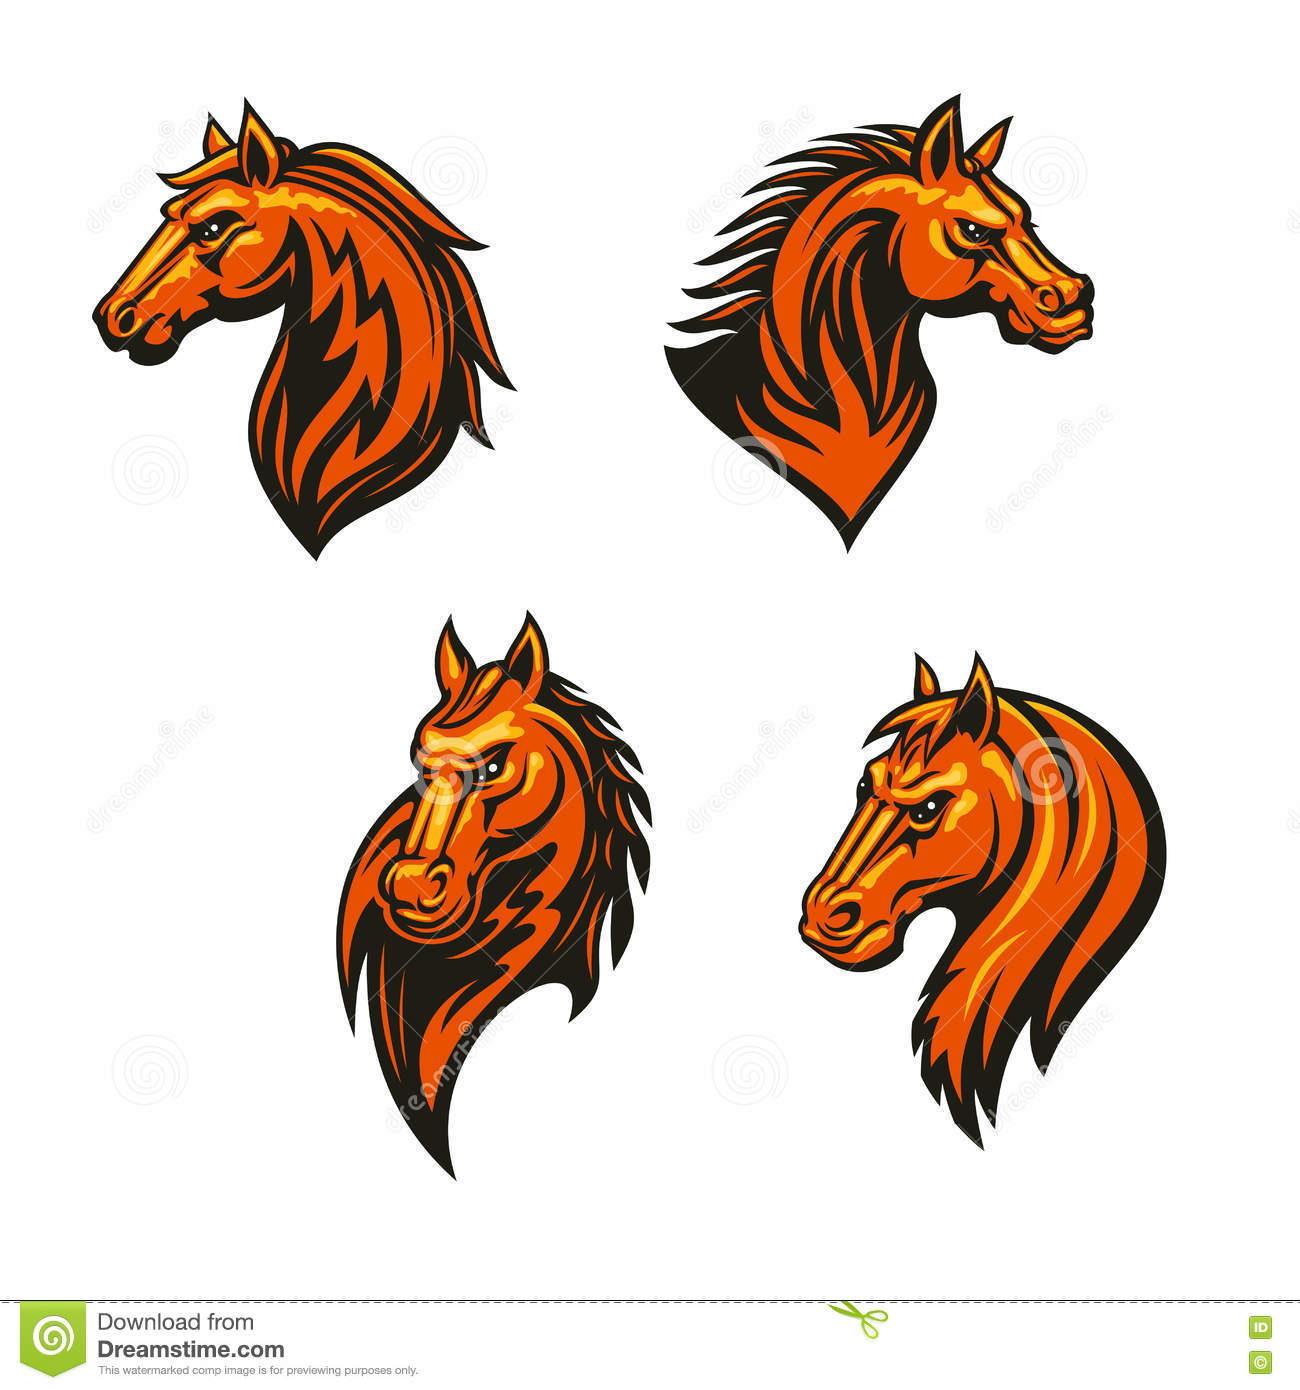 Horse Flame Tattoo Stock Illustrations 229 Horse Flame Tattoo Stock Illustrations Vectors Clipart Dreamstime